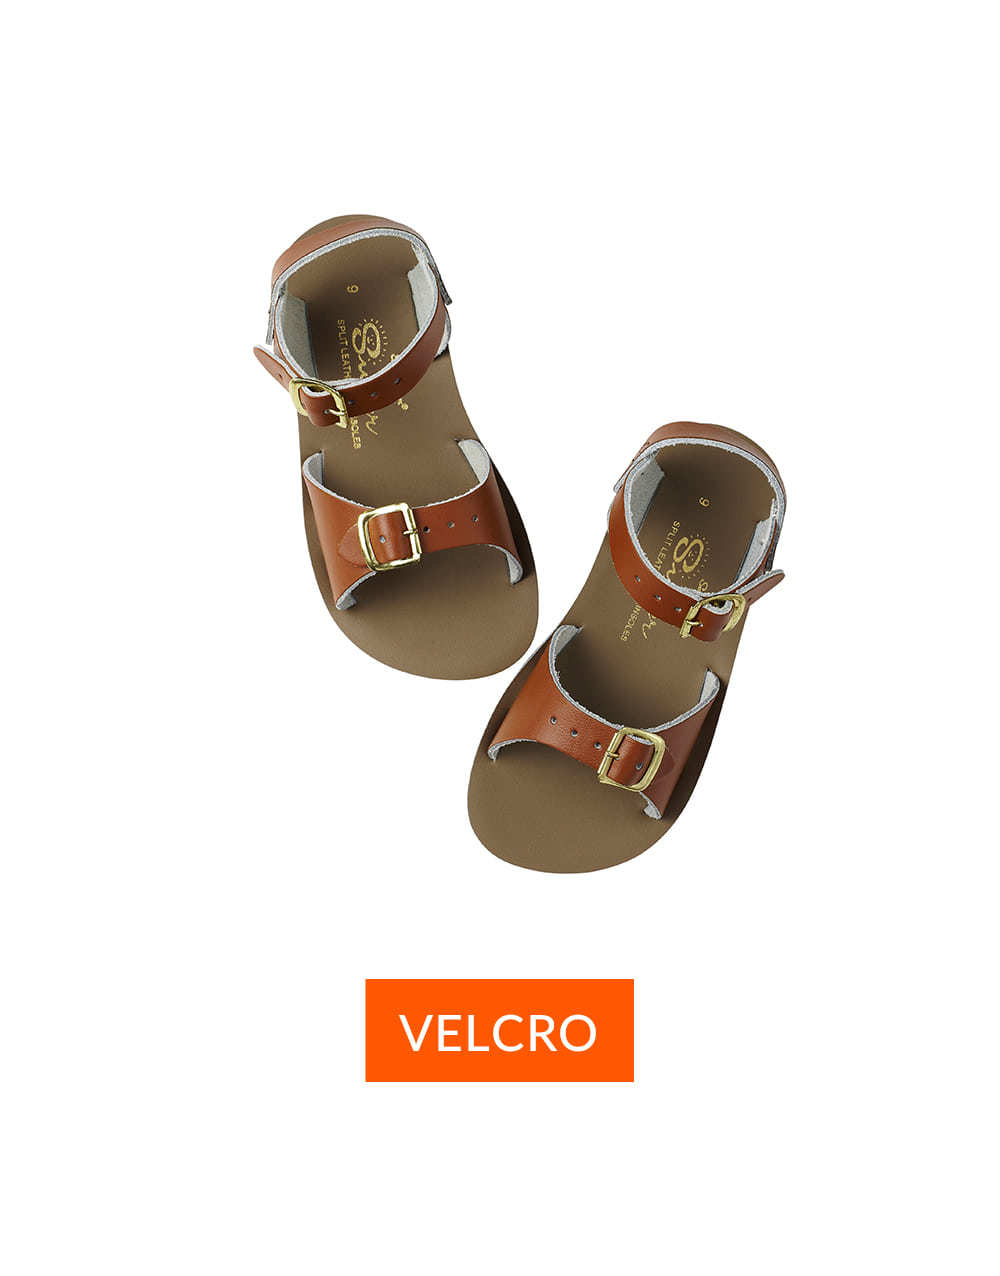 SALT-WATER SANDAL  CHILD VELCRO SURFER  Tan